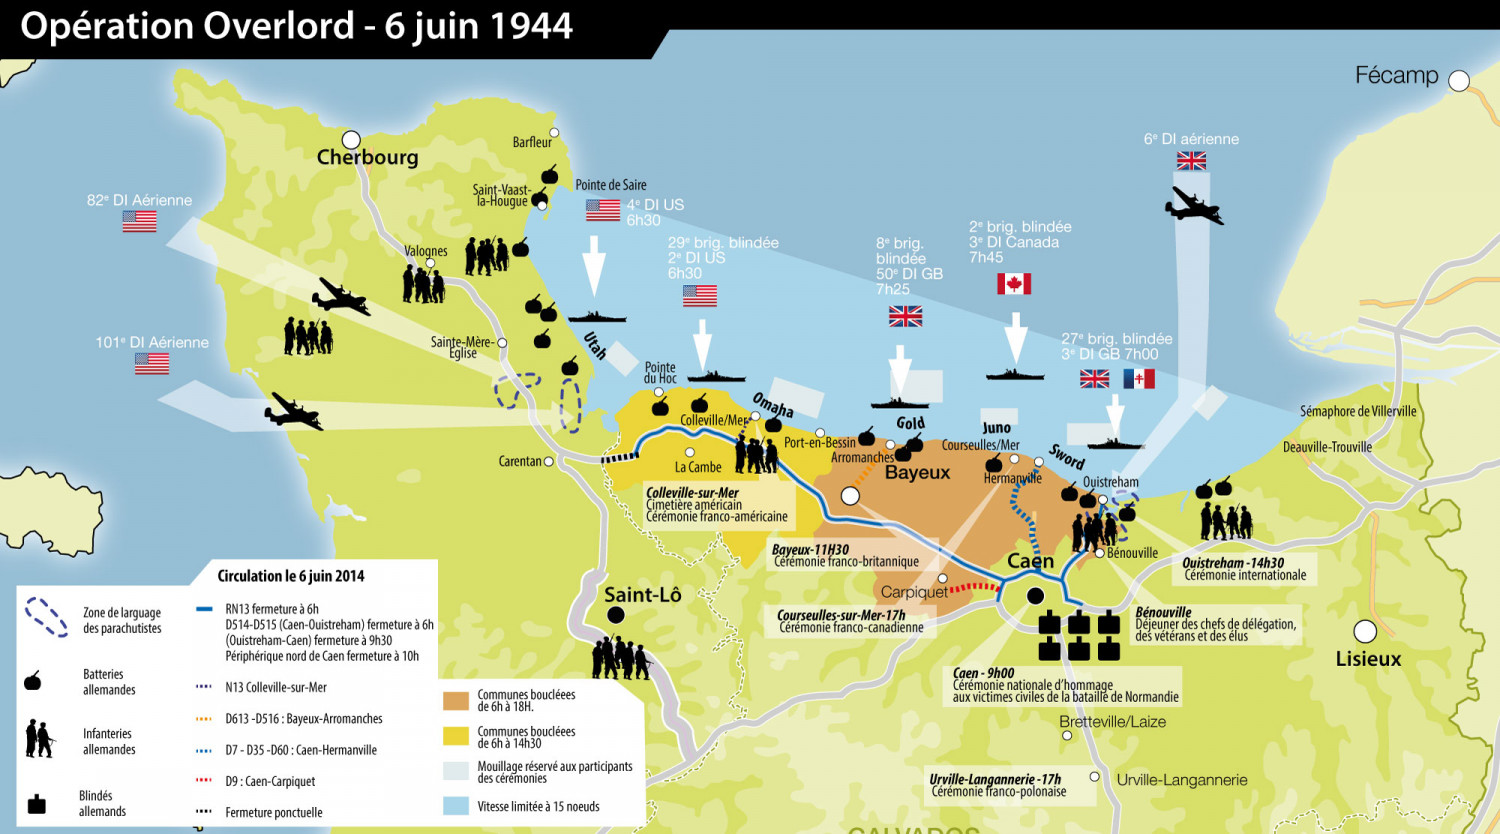 operation overlord Operation overlord was the codename for the battle of normandy, the allied  operation that launched the successful invasion of german-occupied western.